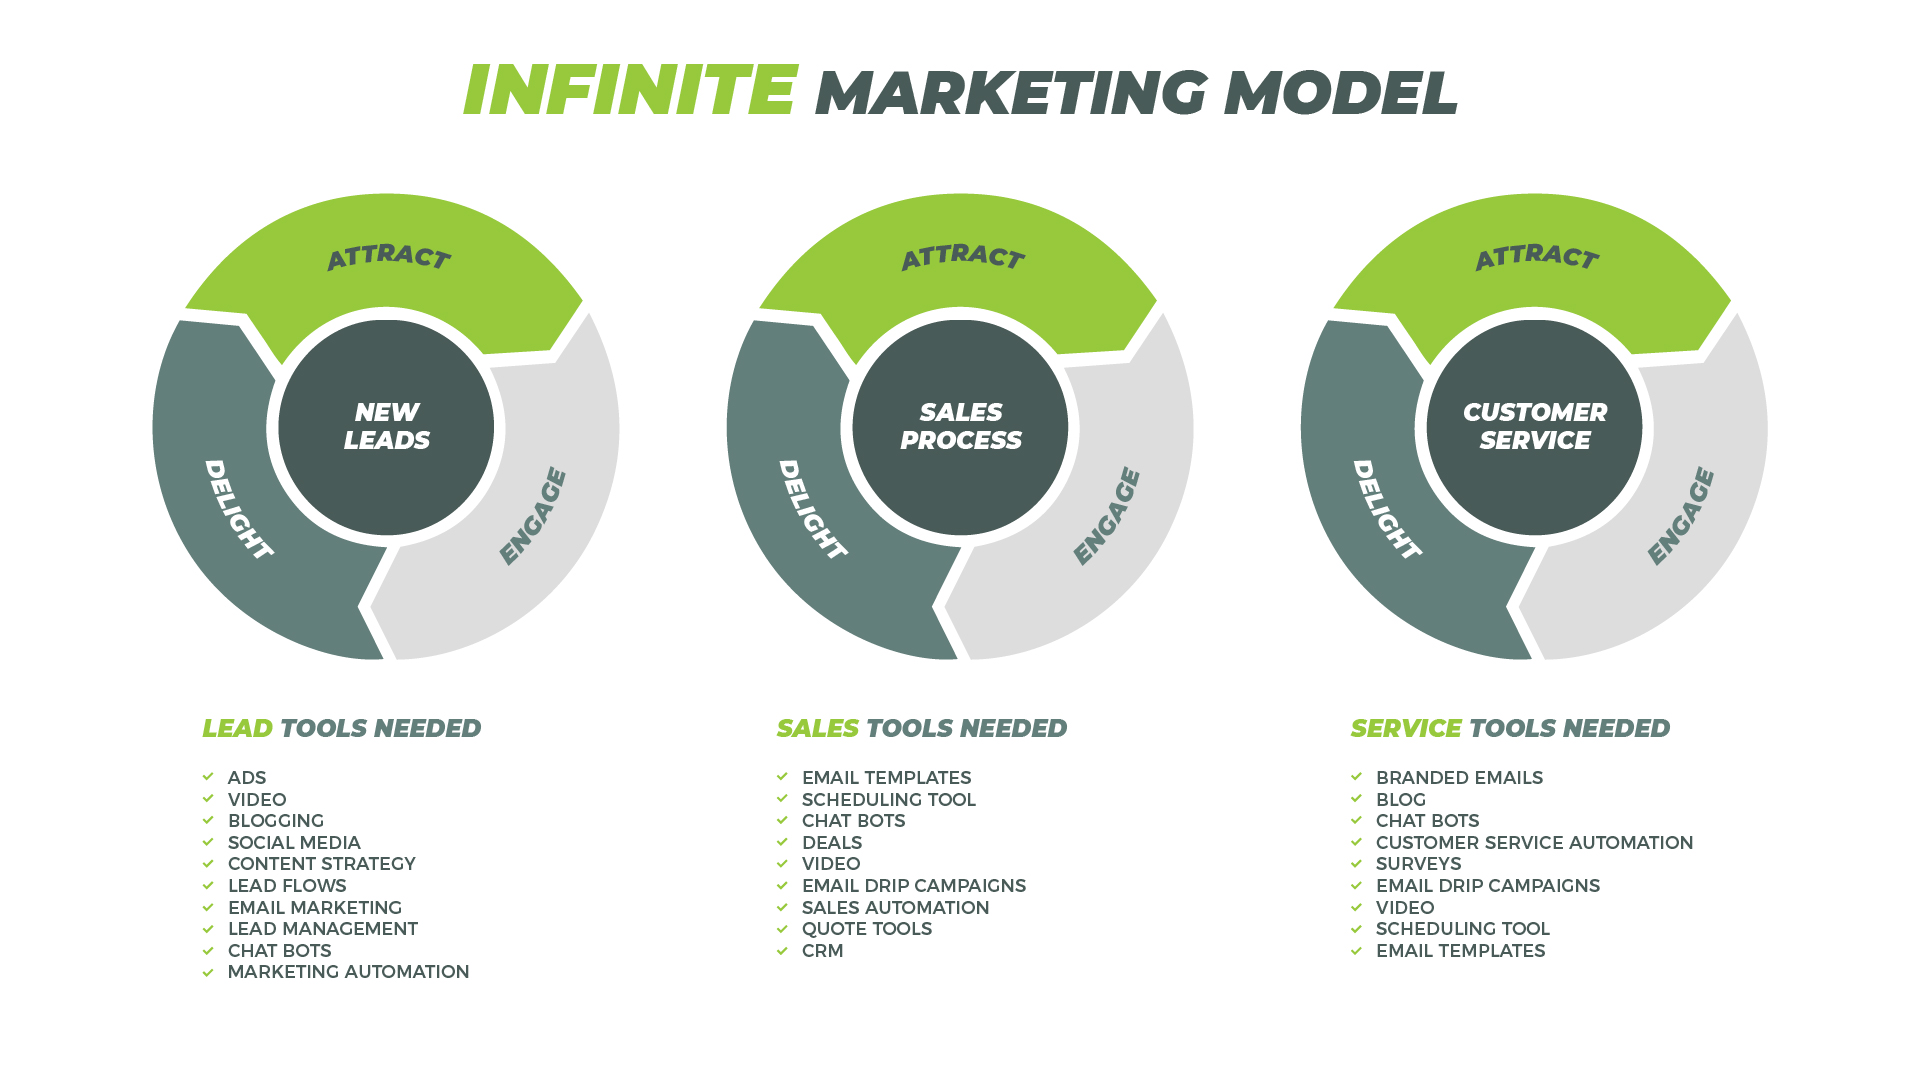 Faster solutions Infinite Marketing Model. What tools do you need for Lead generation, Sales, and ongoing customer service